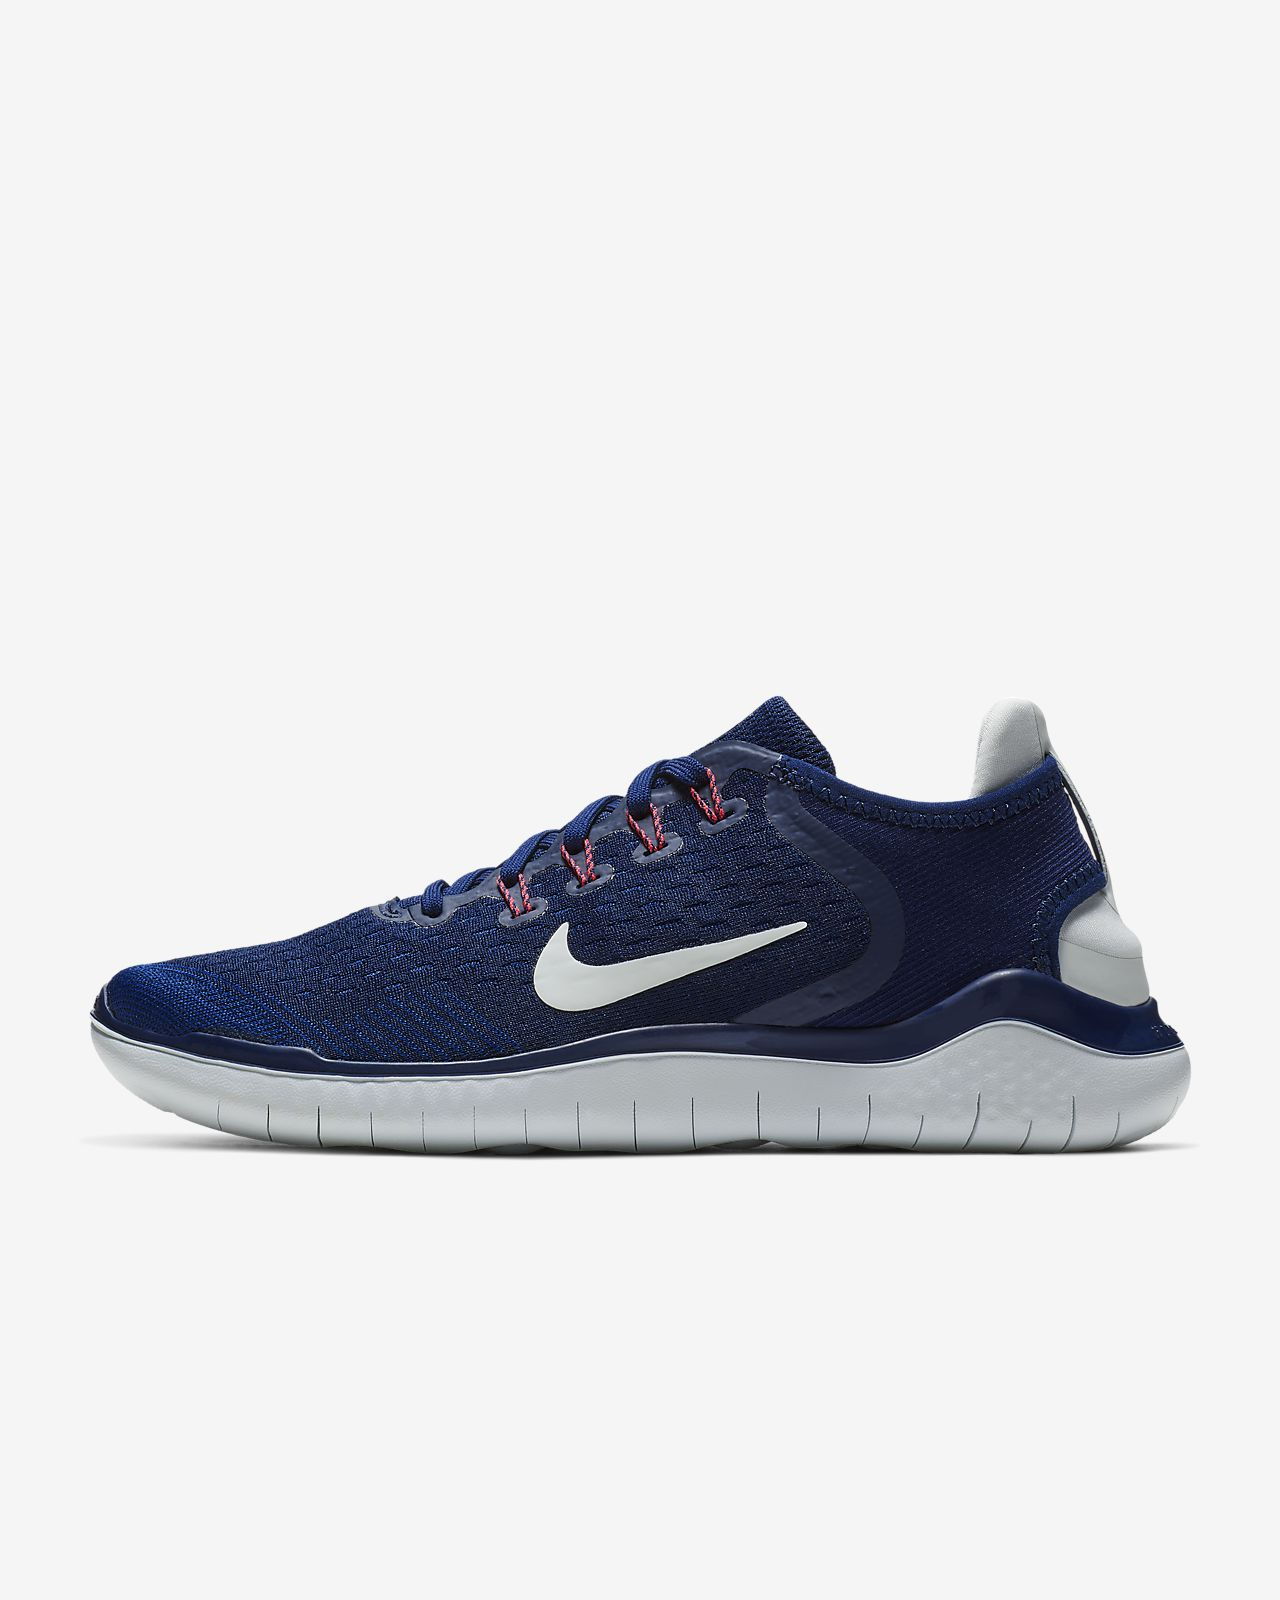 best sneakers 9e232 6094e Women s Running Shoe. Nike Free RN 2018